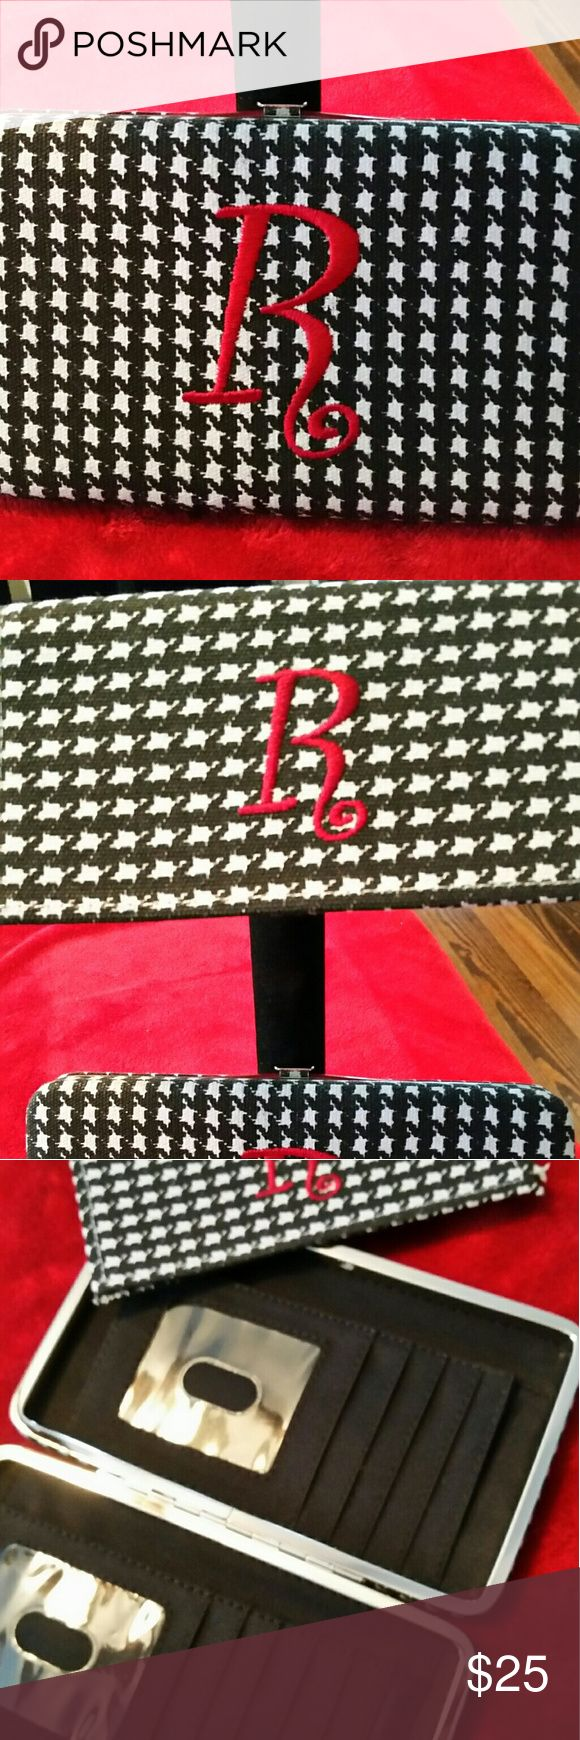 Houndstooth Intial R wallet and checkbook cover Brand new NEVER used wallet and checkbook cover. Houndstooth fabric and monogrammed R maroon thread. Alabama Crimson Tide fans must have! NONE Bags Wallets